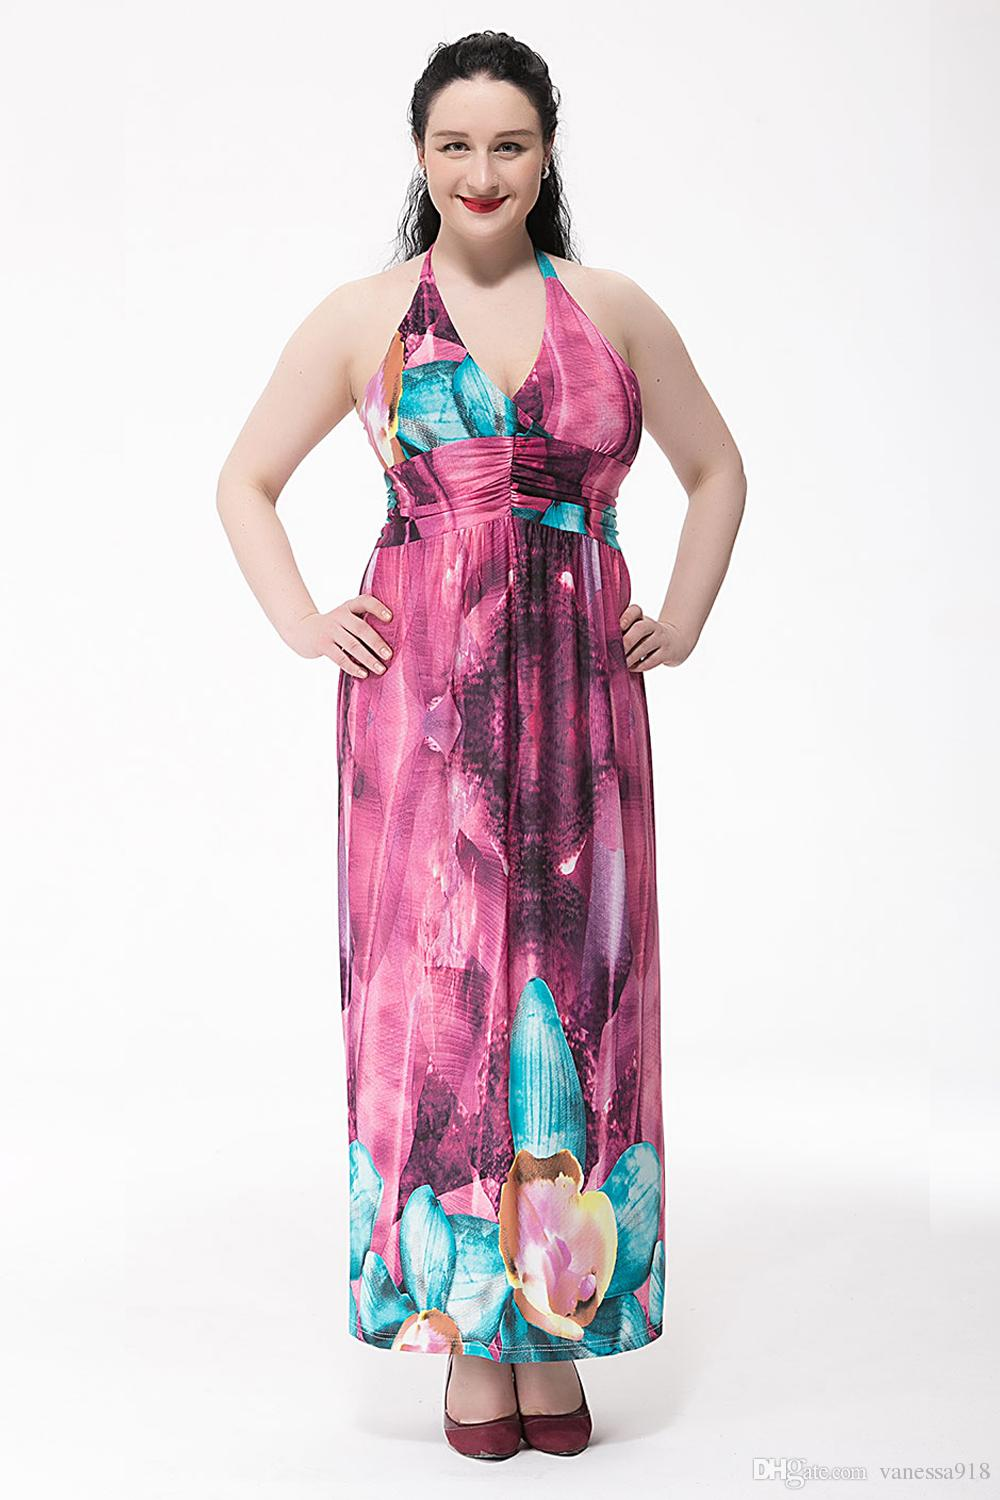 6XL 5XL Oversized Bohemian Dress Women Purple Floral Printed Backless Halter Summer Casual Long Dress Plus Size SQ-010